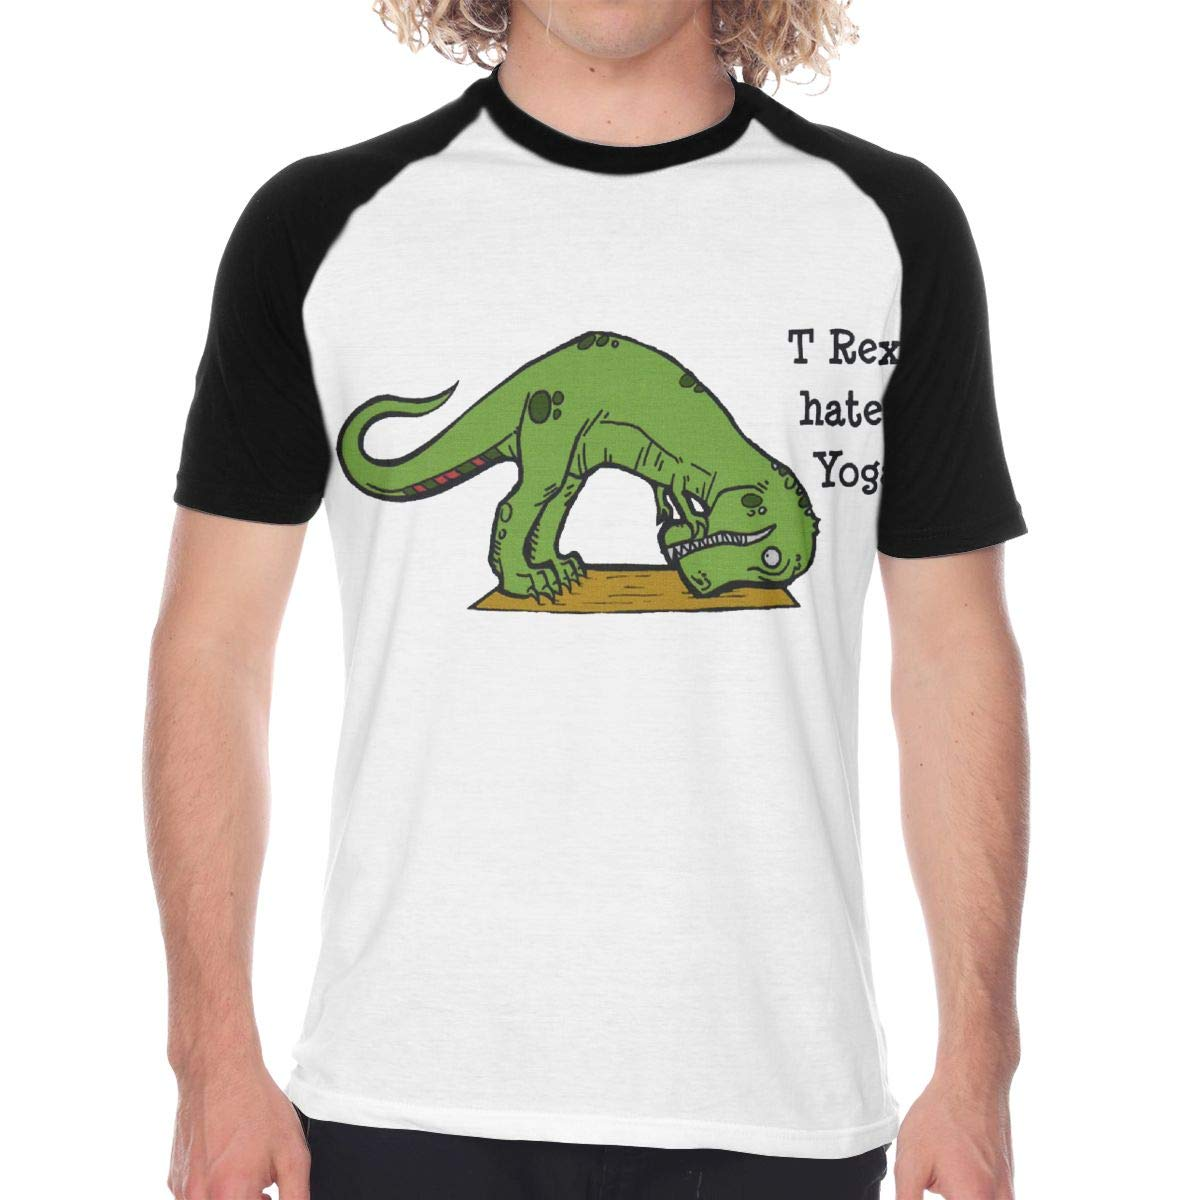 Mens Casual Short Sleeve Baseball Jersey T Rex Hates Yoga ...